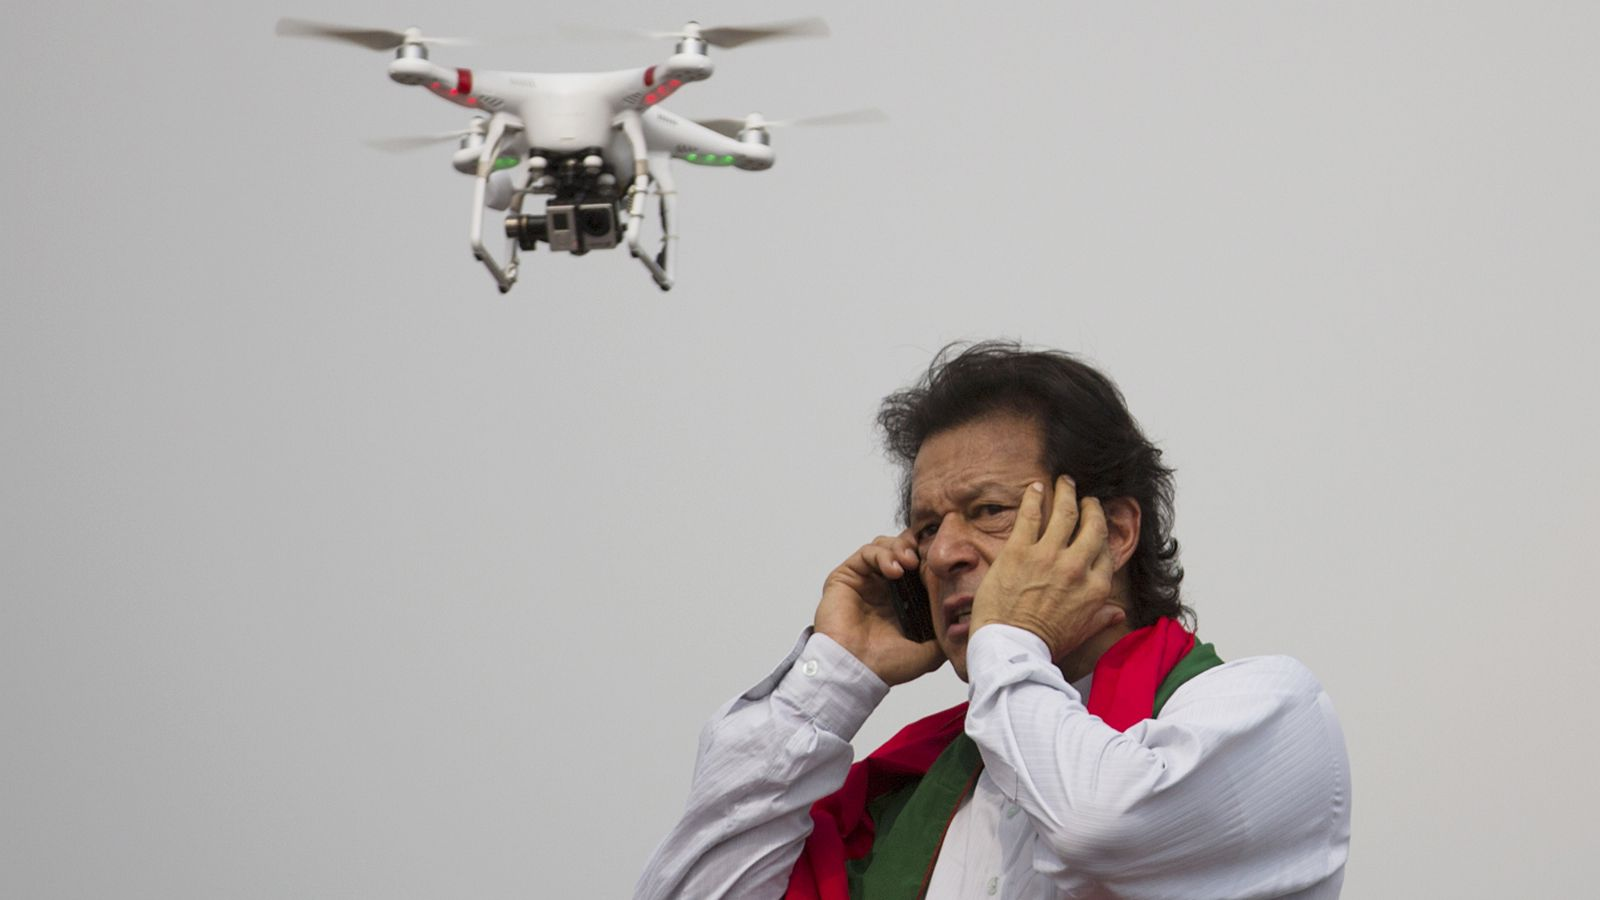 Pakistan's cricketer-turned-politician Imran Khan talks over a phone as a camera-equipped drone hovers outside a parliament in Islamabad, Pakistan, Thursday, Aug. 21, 2014. Thousands of Khan's supporters are besieging parliament for a second day Thursday to pressure Prime Minister Nawaz Sharif to resign over alleged election fraud.